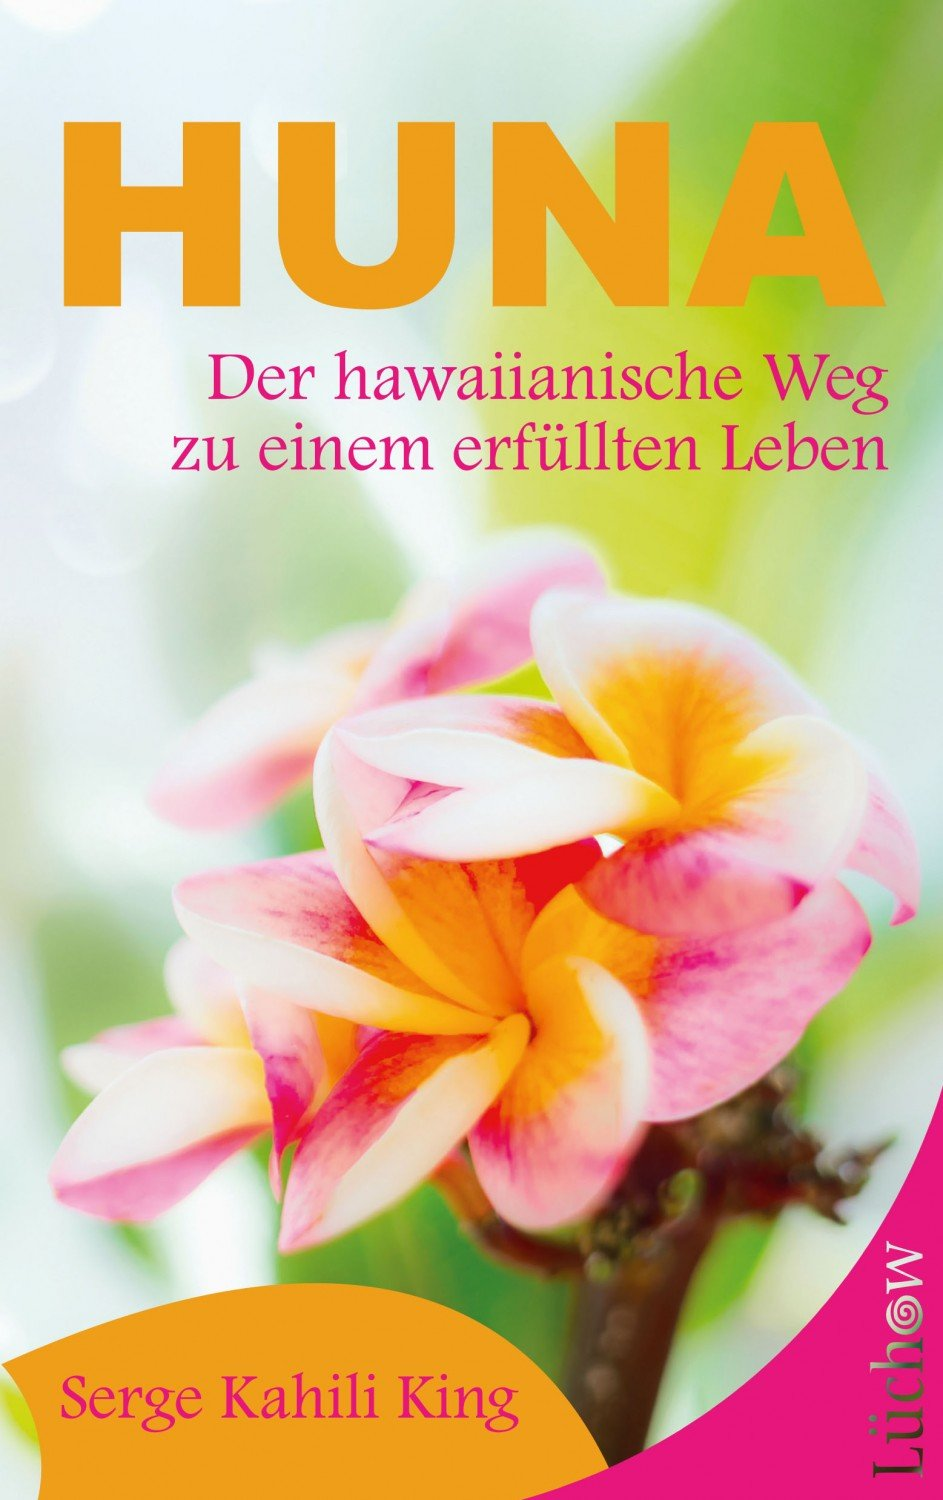 isbn 9783899014822 huna der hawaiianische weg zu einem erf llten leben neu gebraucht kaufen. Black Bedroom Furniture Sets. Home Design Ideas